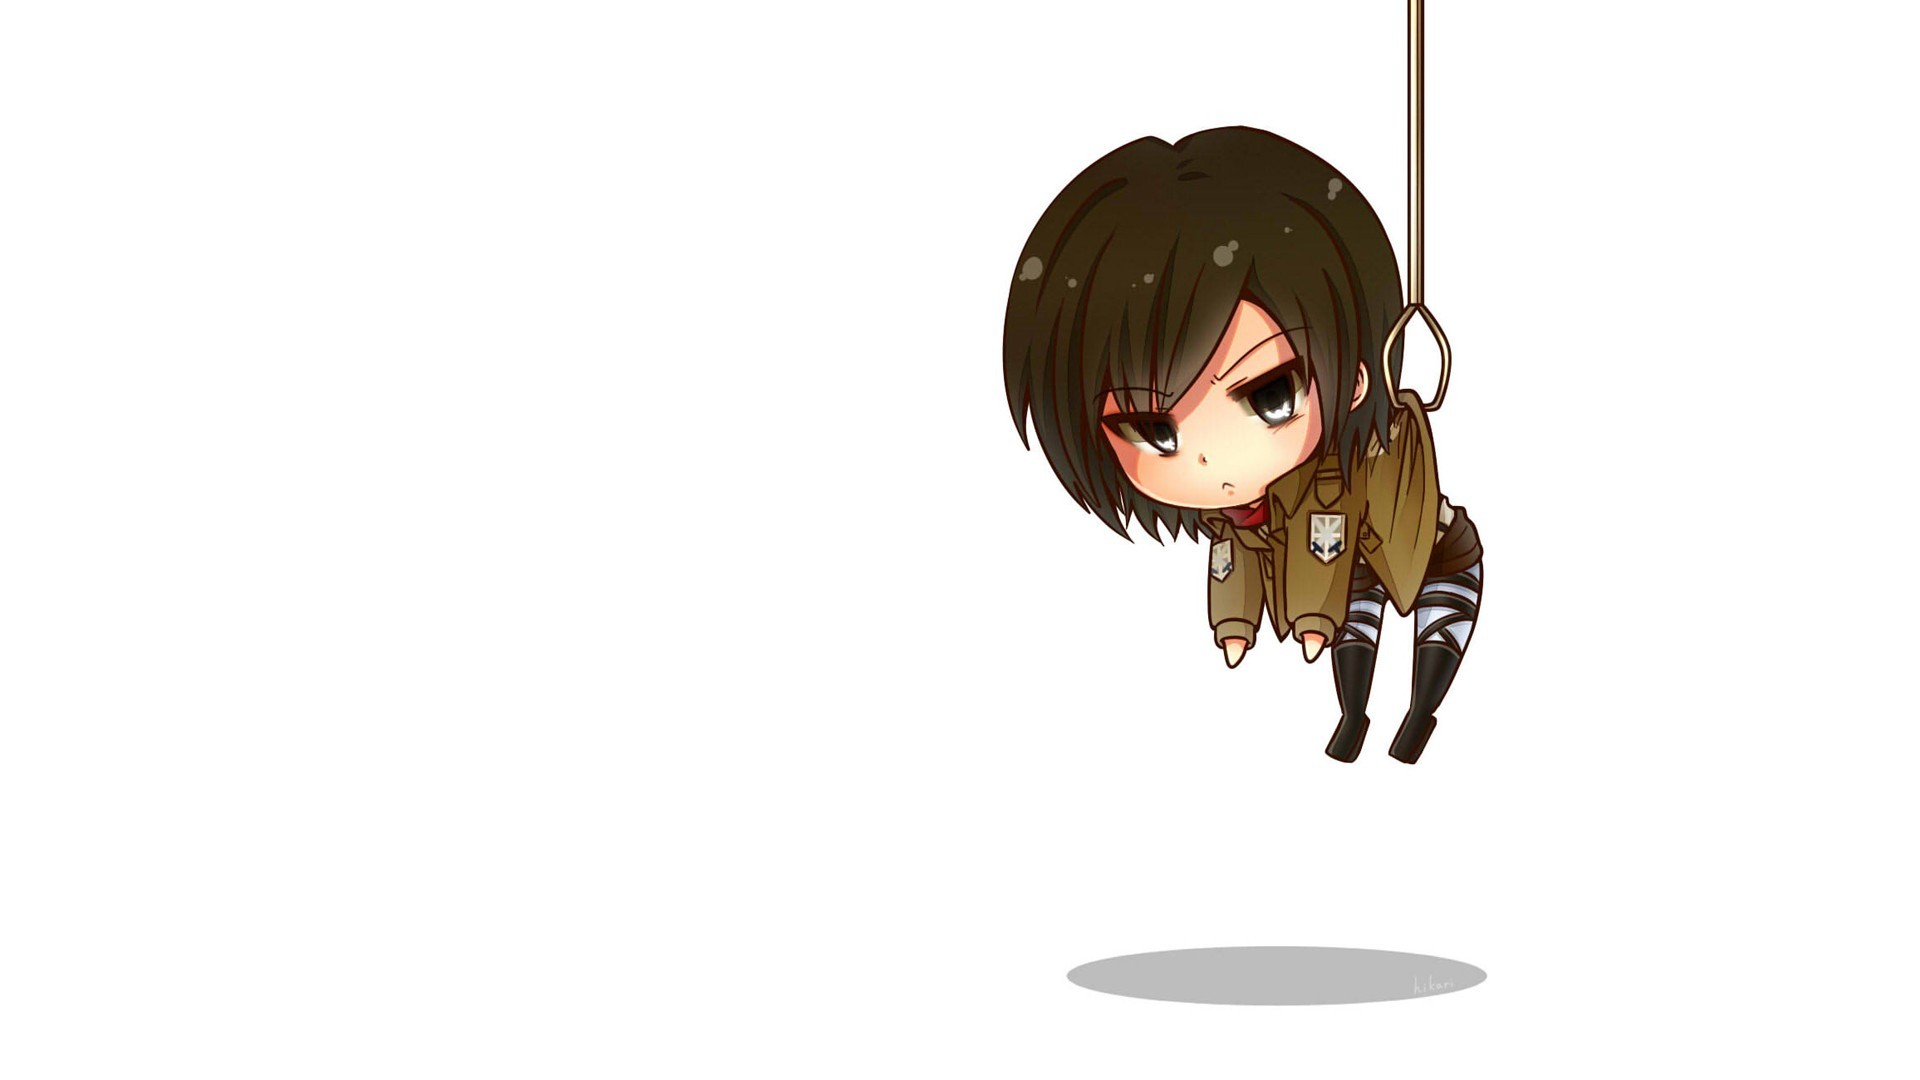 Attack on Titan Chibi Wallpaper 69 images 1920x1080